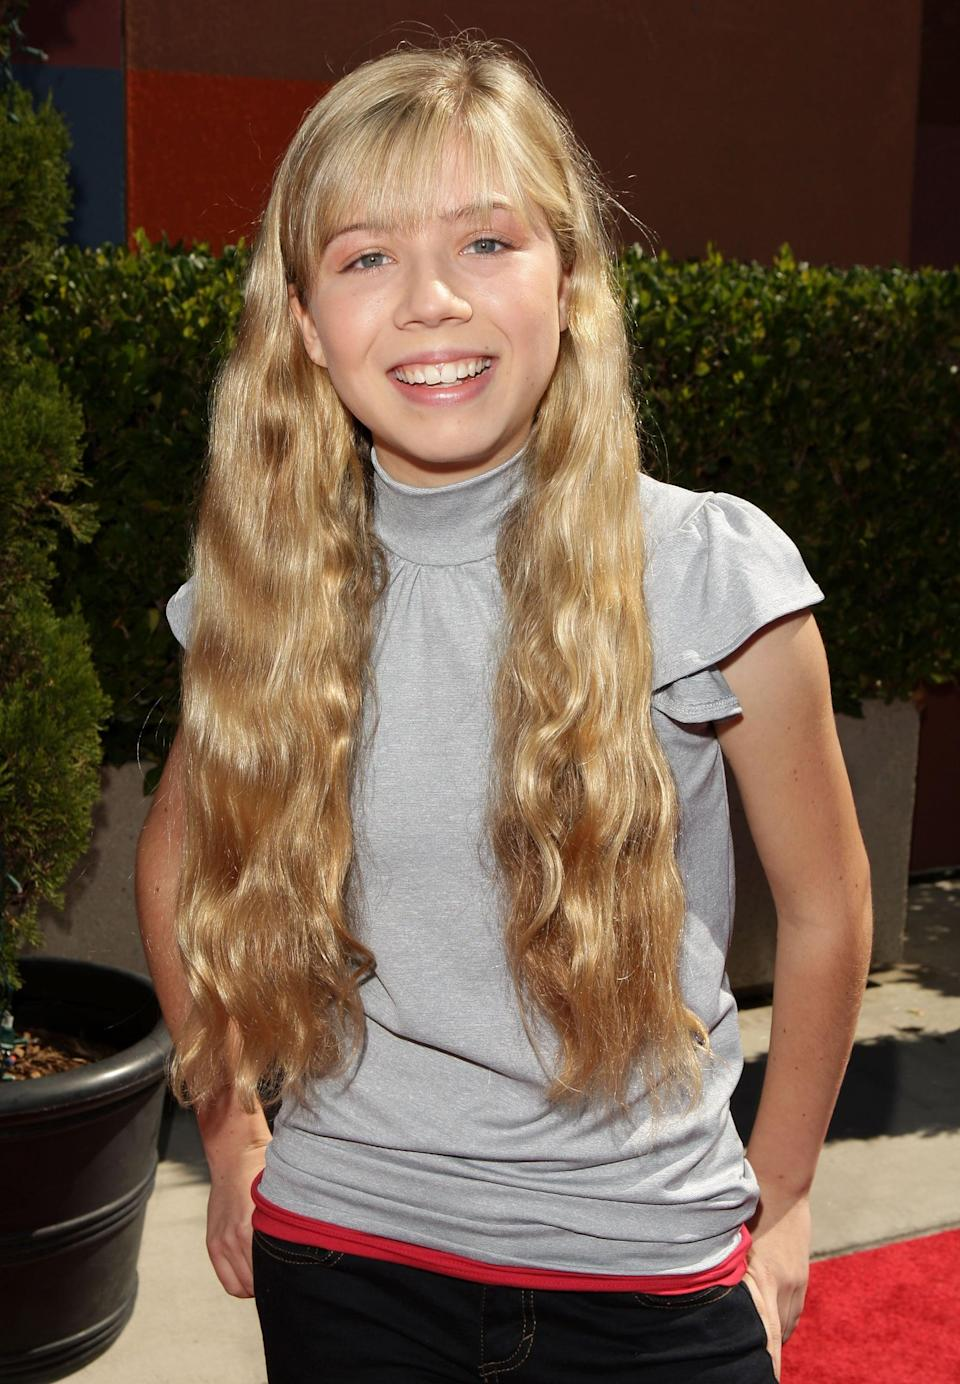 <p>At 15 years old, Jennette McCurdy was the eldest of the <strong>iCarly</strong> web show trio. Prior to the series, McCurdy made numerous television appearances on a variety of shows like <strong>Malcolm in the Middle</strong> and <strong>Will &amp; Grace</strong>. Two years before she made audiences laugh as Sam Puckett on <strong>iCarly</strong>, McCurdy landed a small role on <strong>Zoey 101</strong> as Trisha Kirby, a troublemaking student at Pacific Coast Academy.</p>